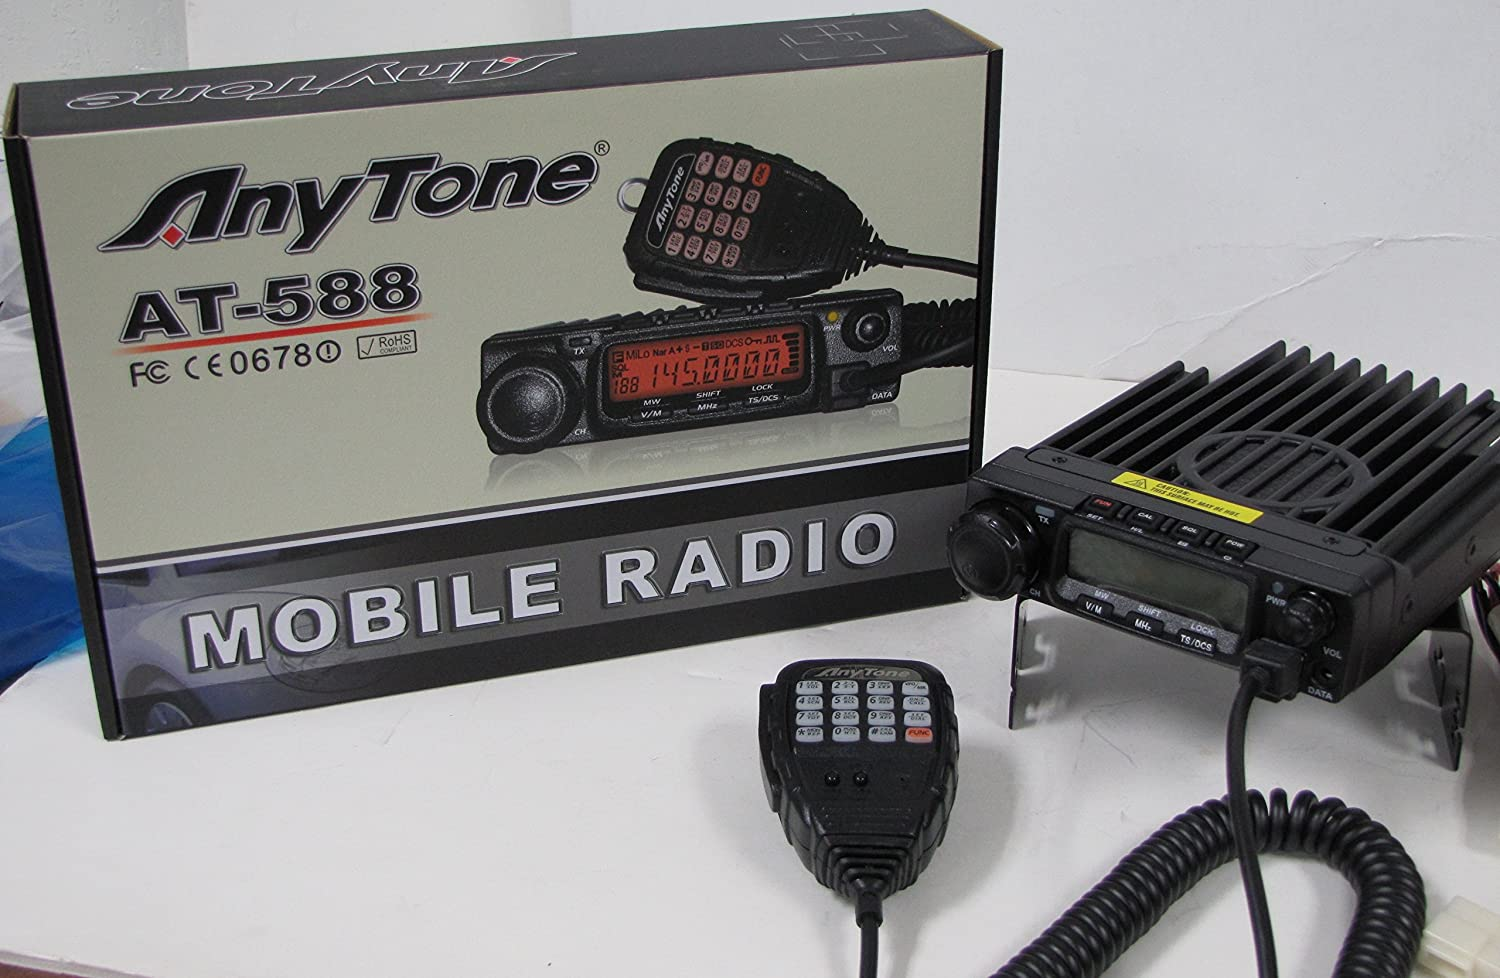 AnyTone at 588 220MHz 50W Mobile Radio with Scrambler